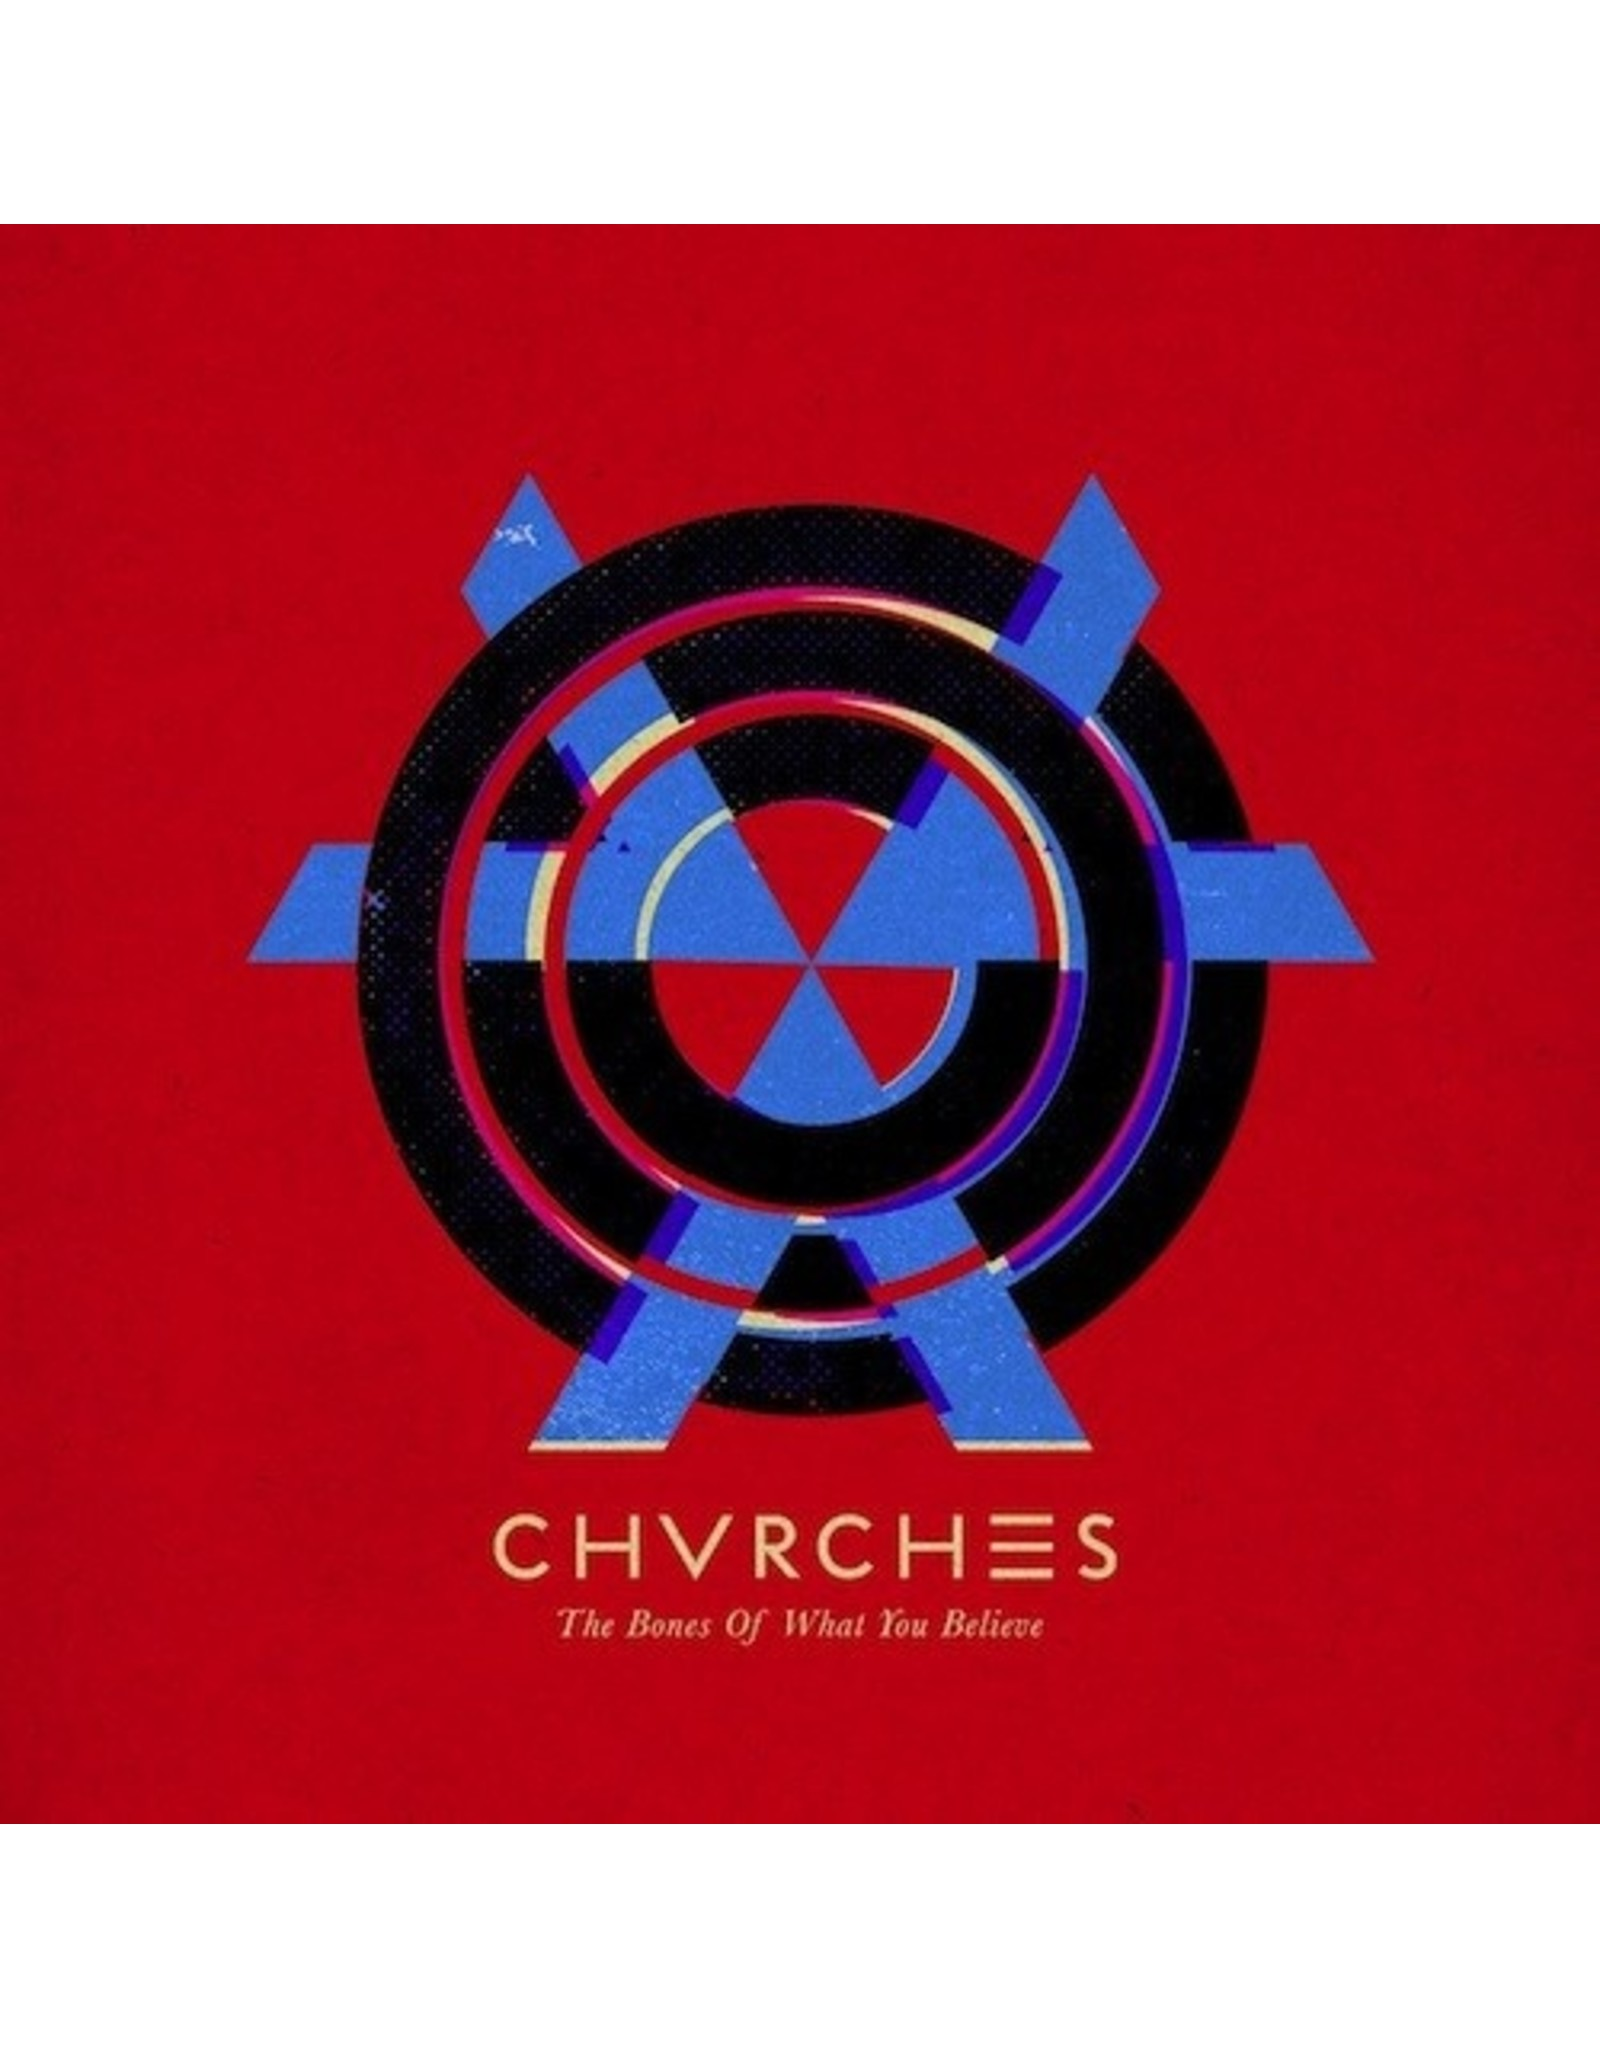 New Vinyl Chvrches - Bones Of What You Believe LP